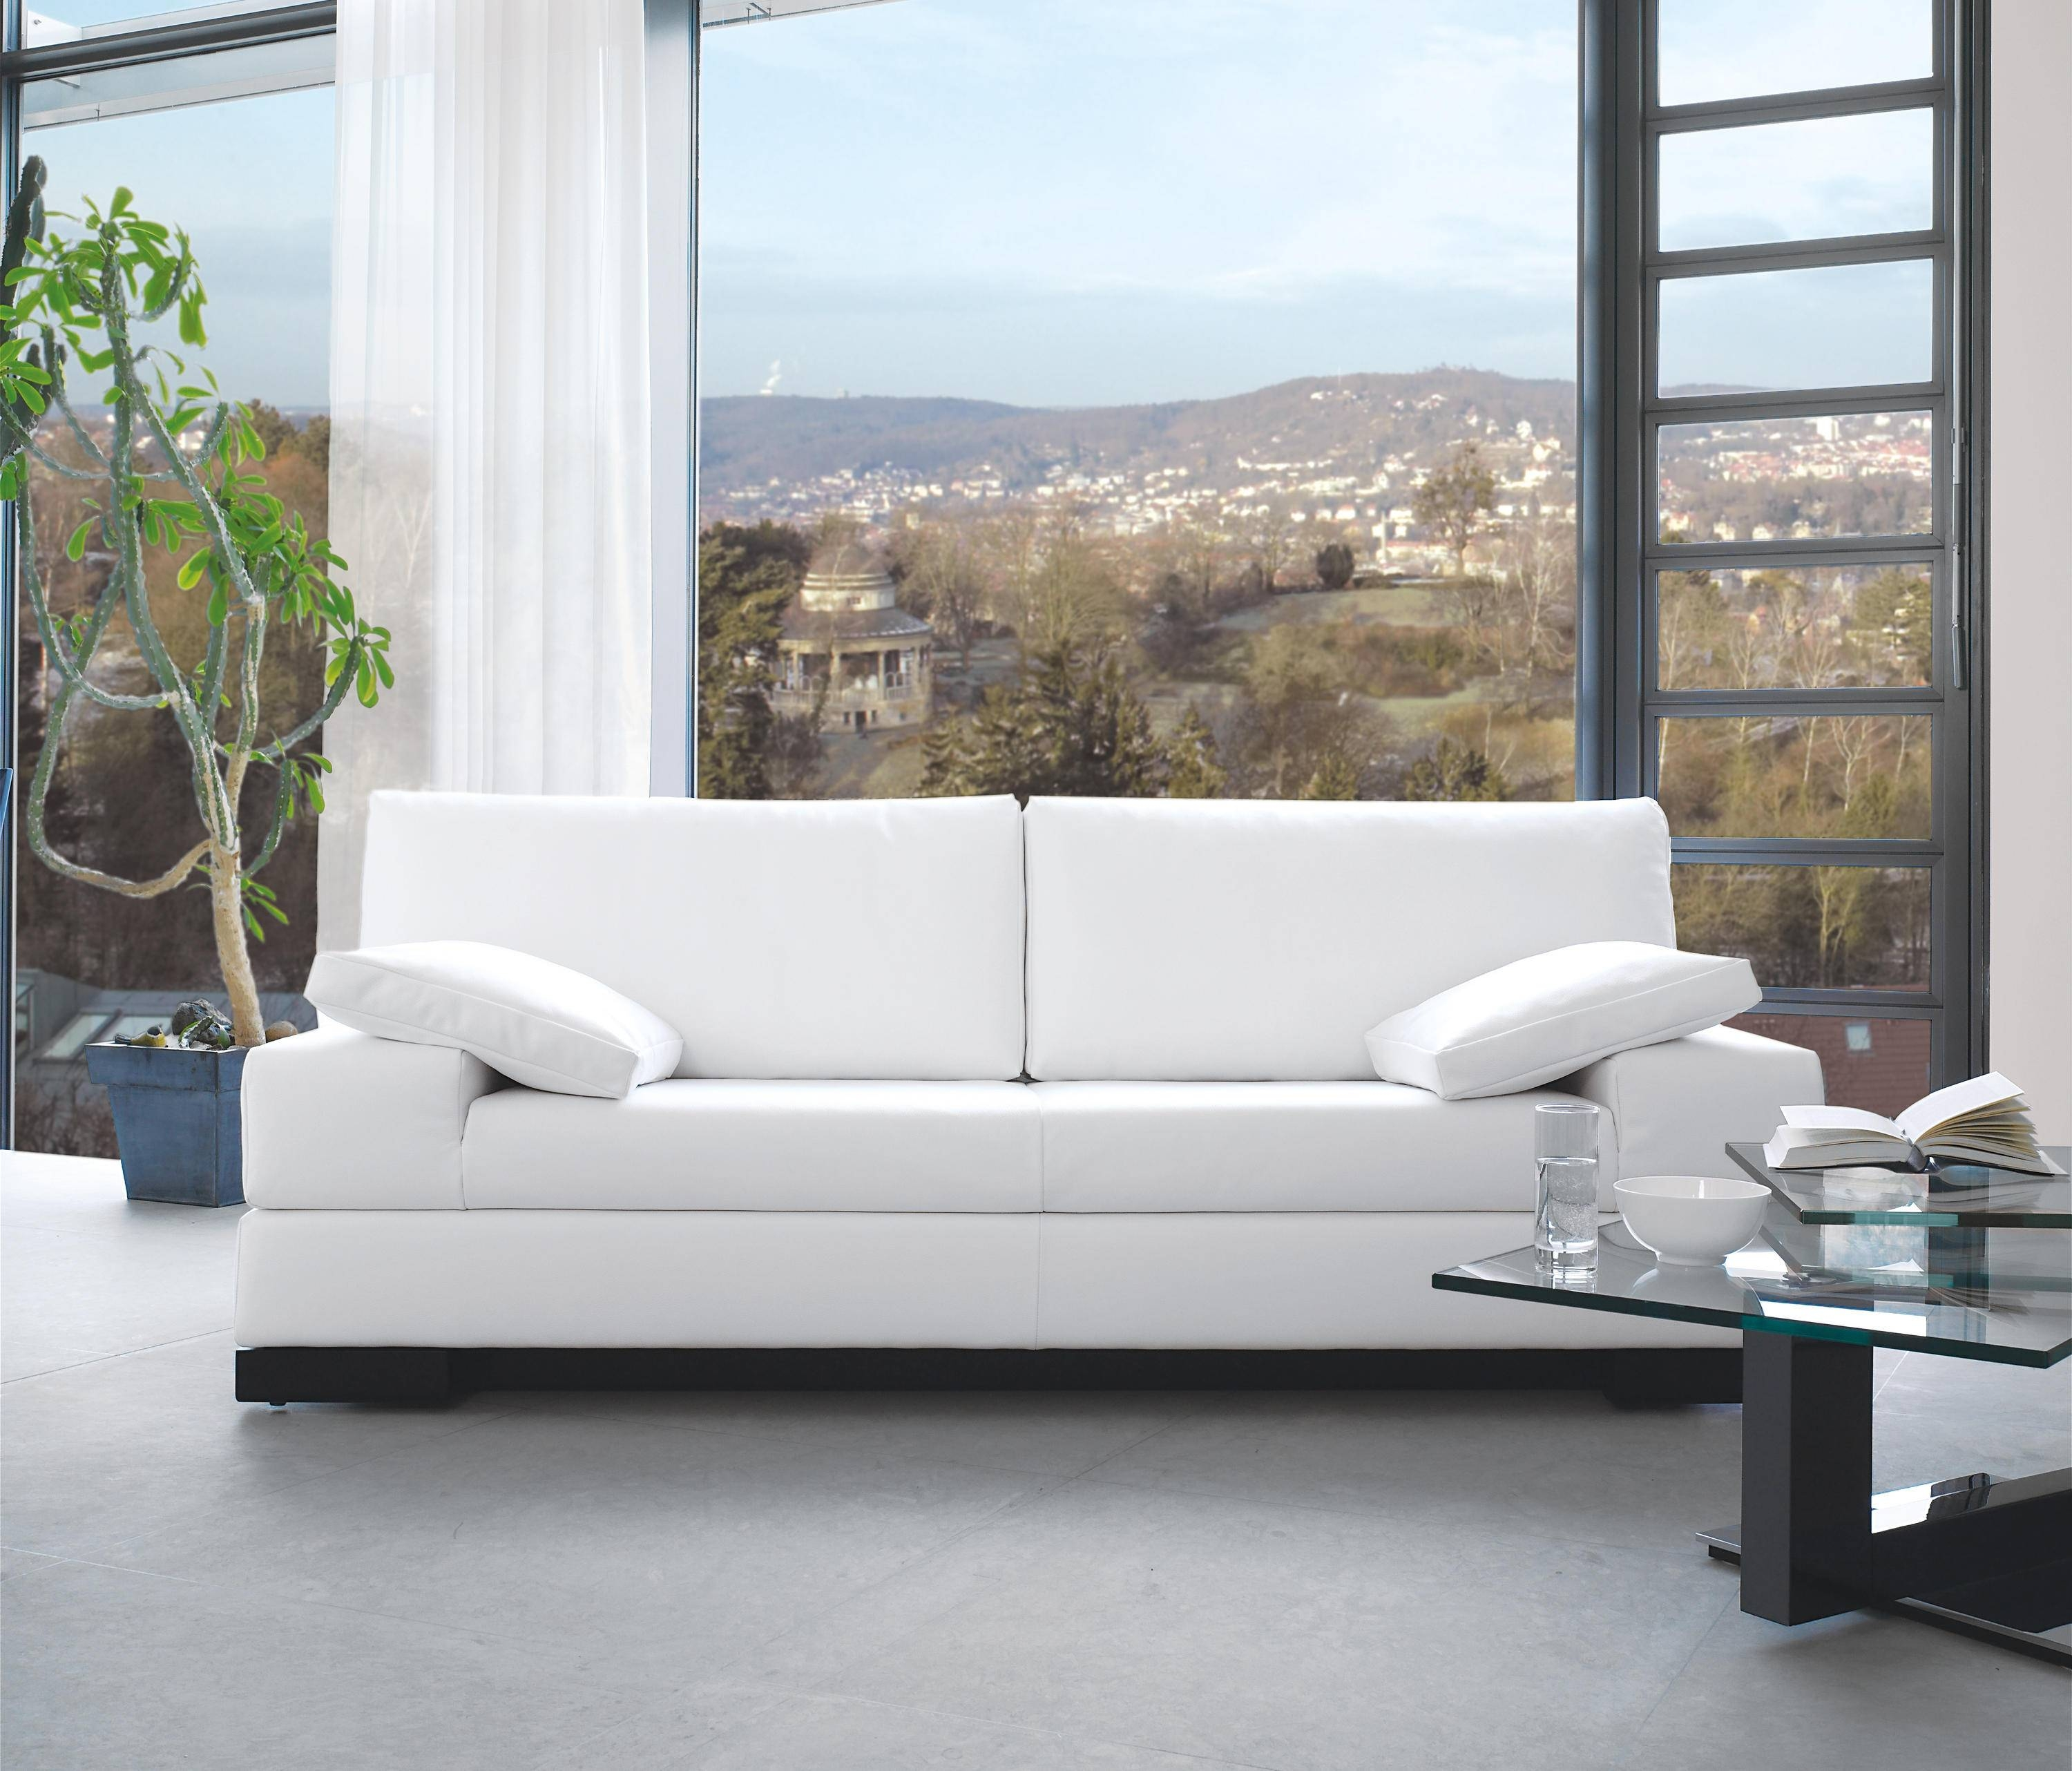 King Size Sofa-Bed - Sofa Beds From Die Collection | Architonic regarding King Size Sofa Beds (Image 8 of 15)